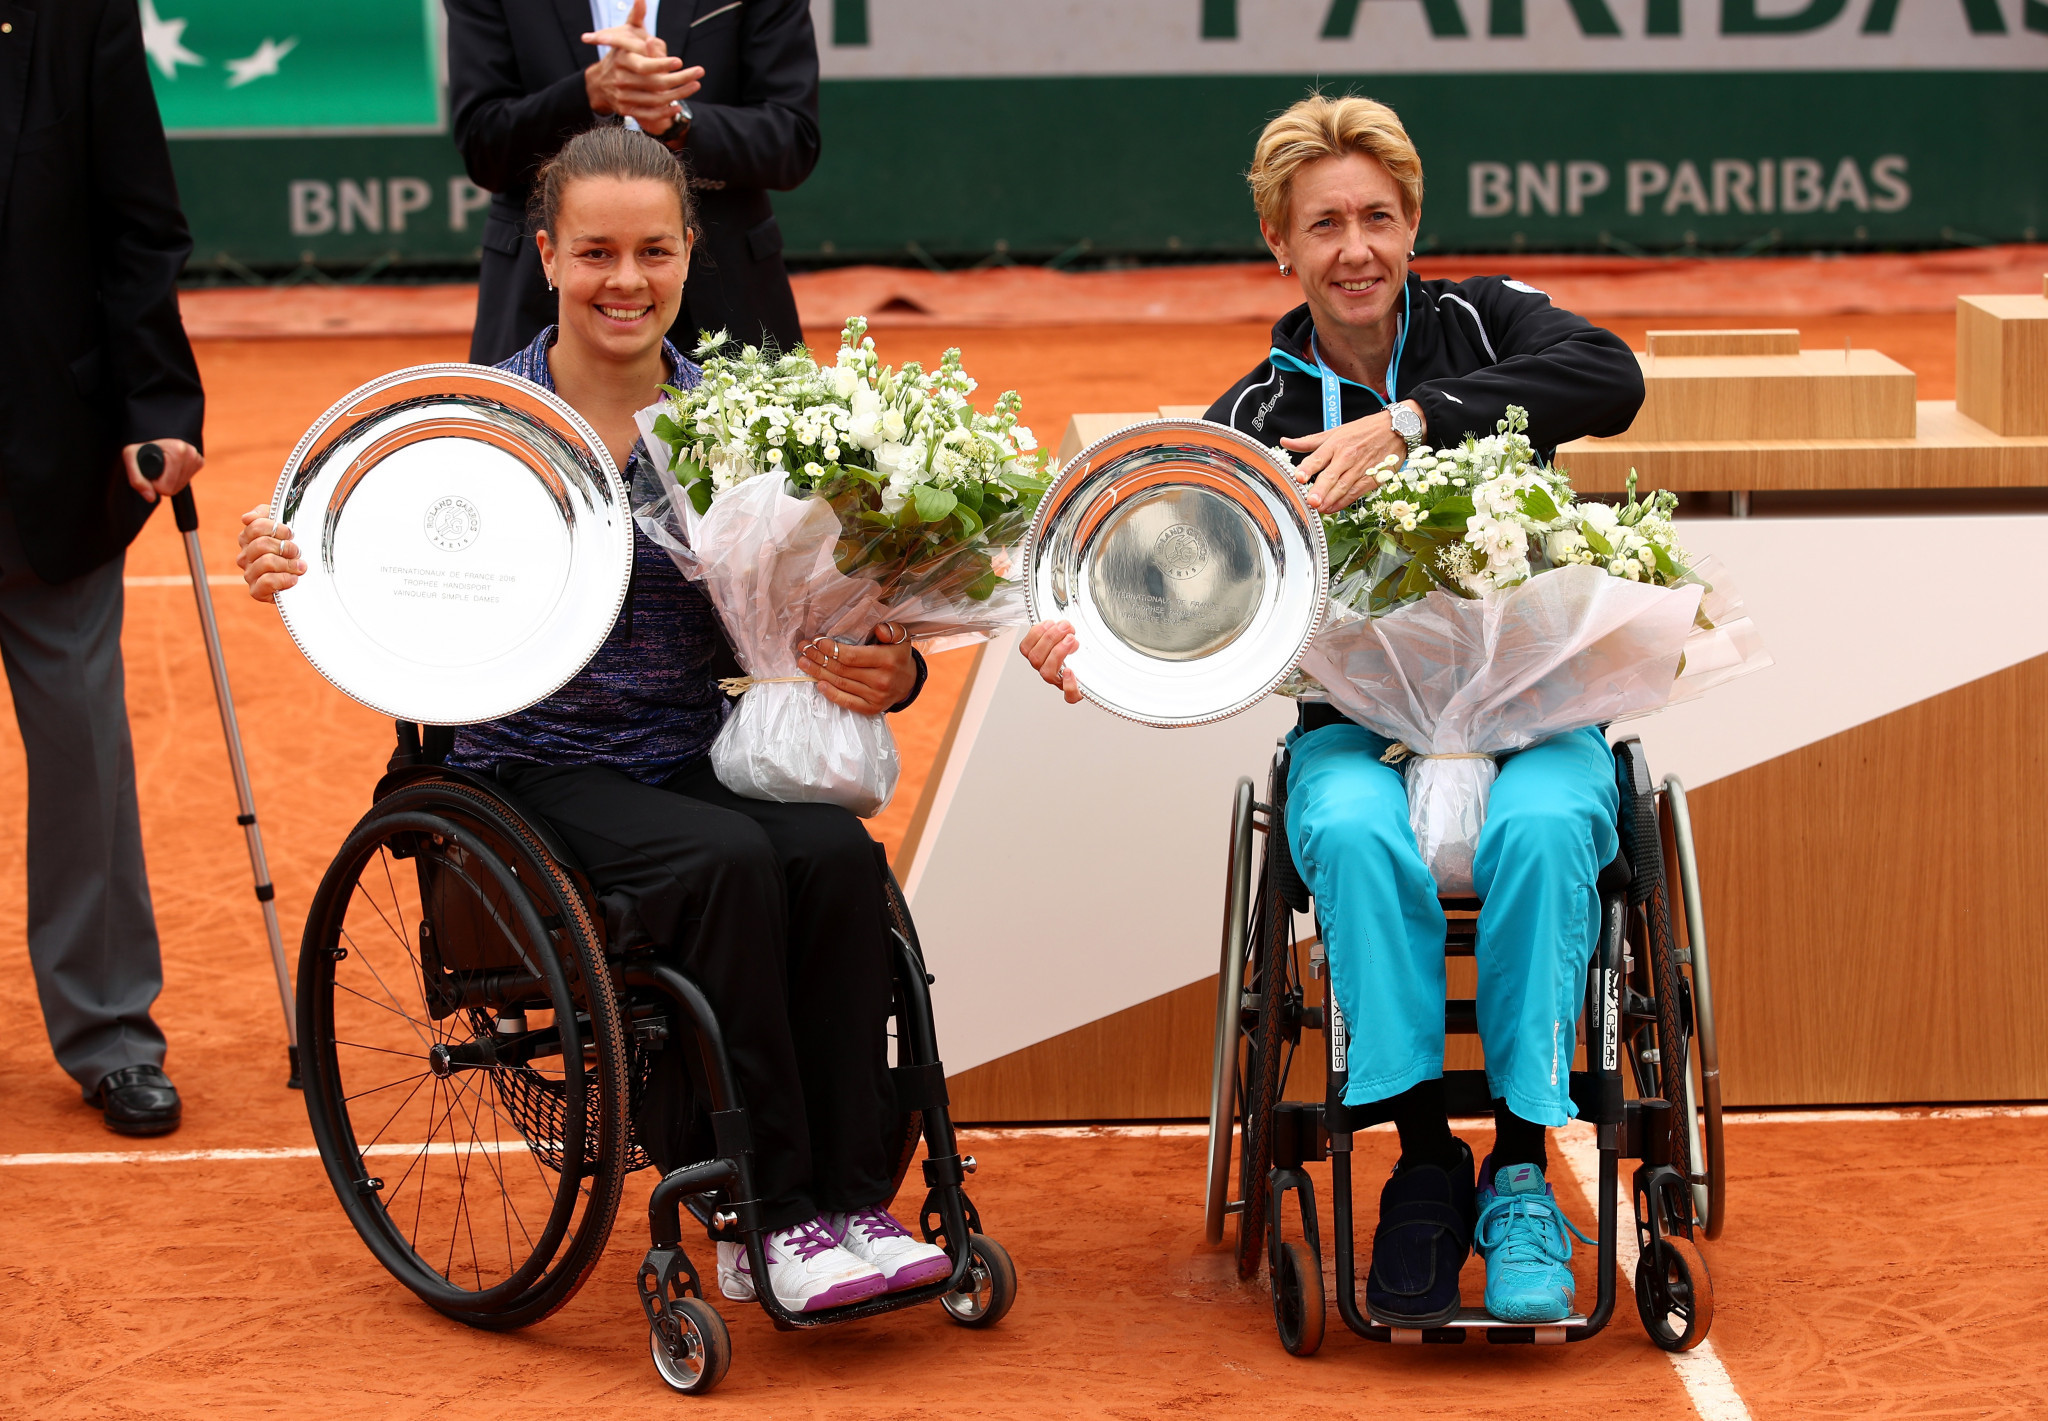 Marjolein Buis, left, won her only major singles title at the French Open in 2016, beating Sabine Ellerbrock of Germany in the final ©Getty Images